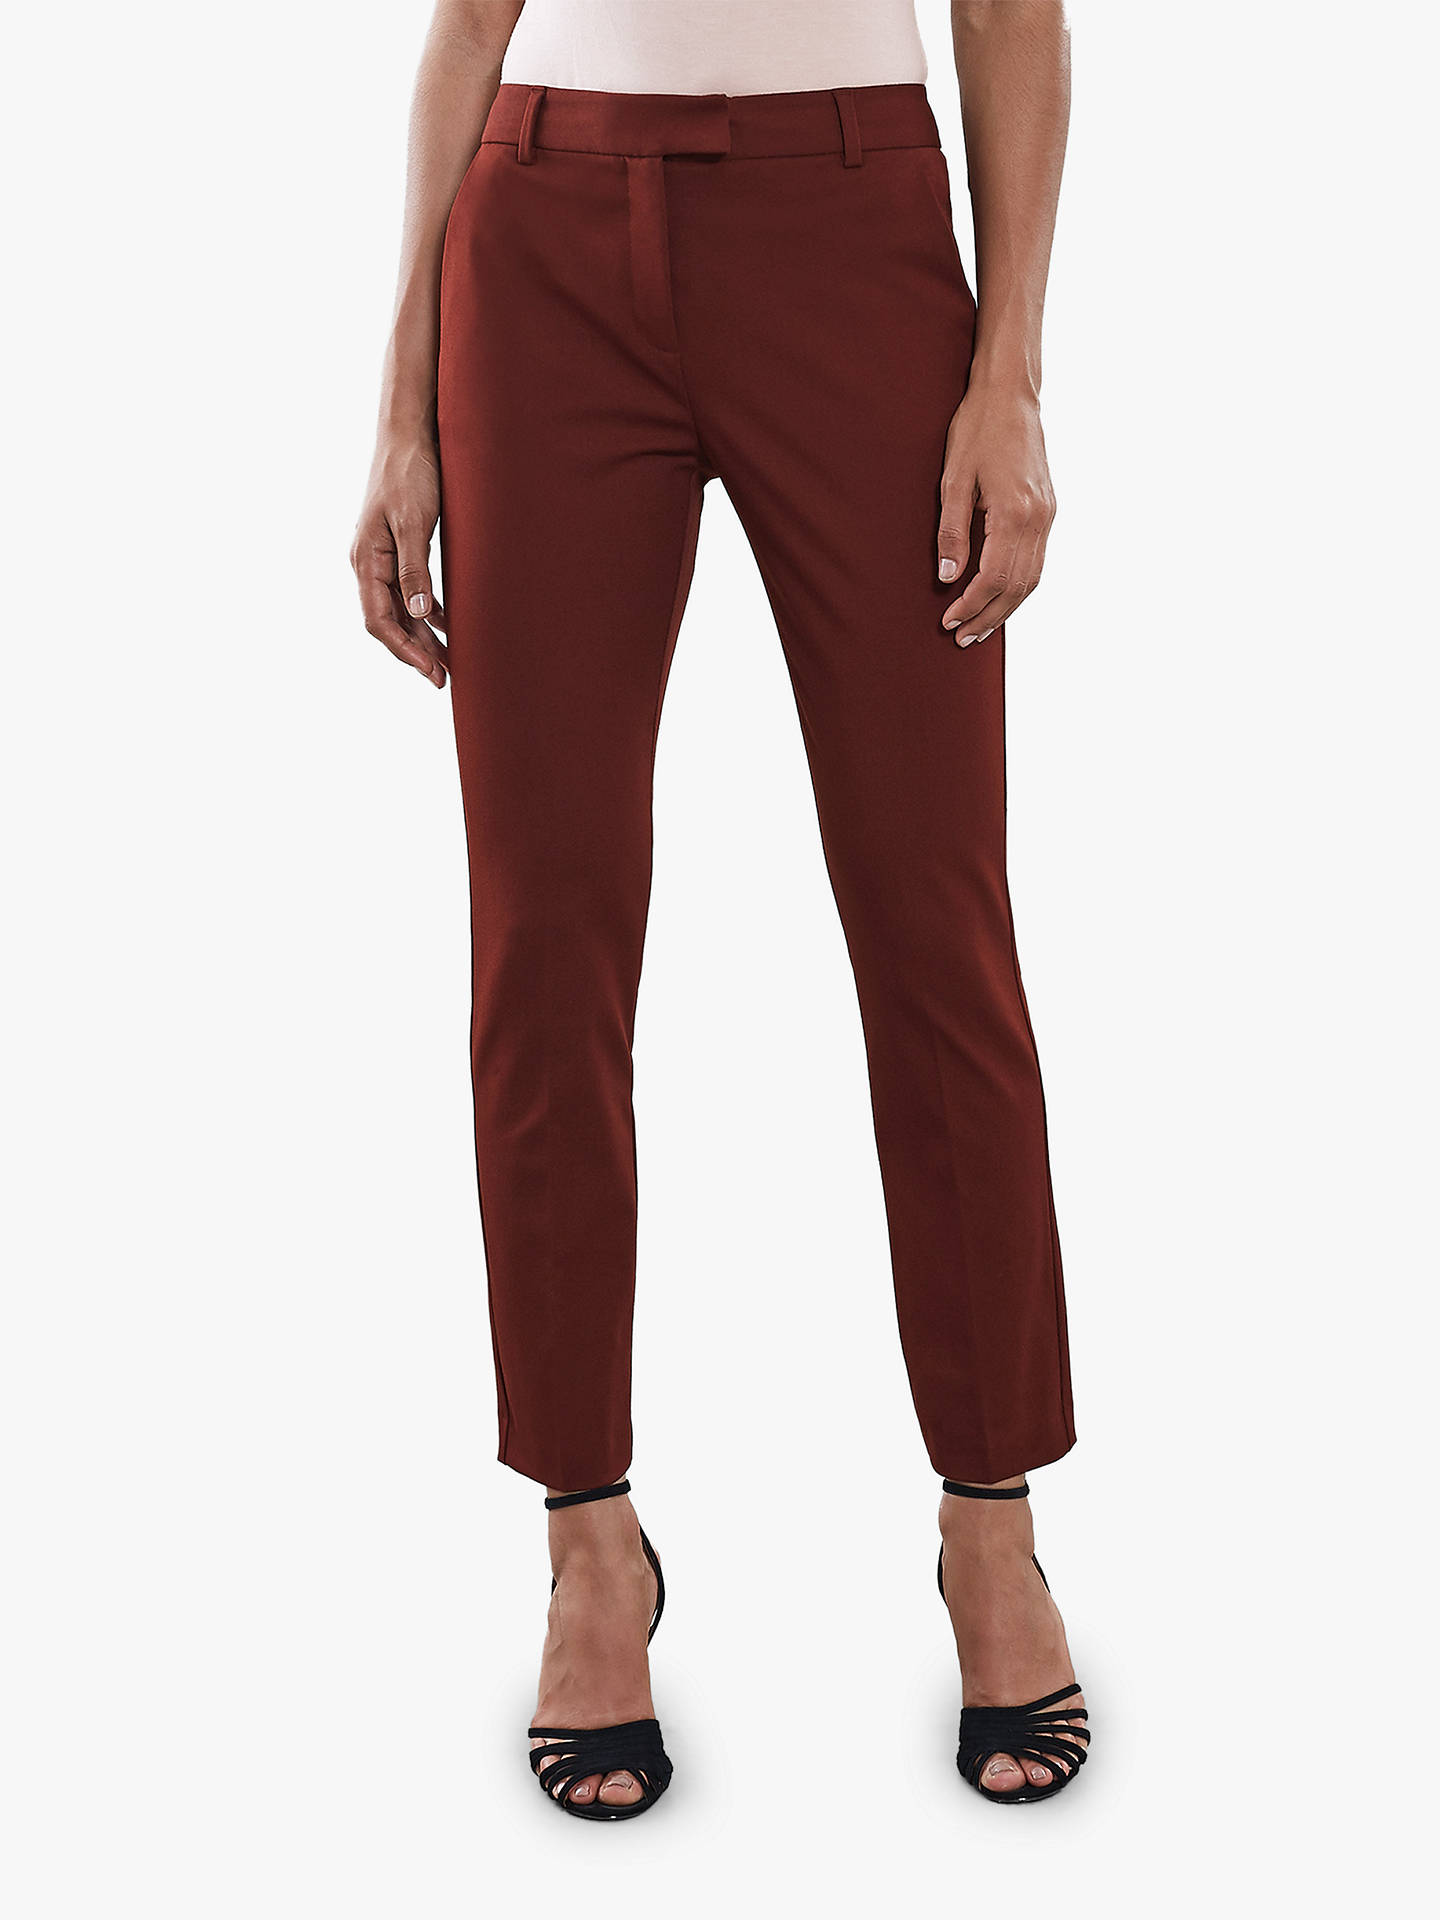 BuyReiss Joanne Tailored Trousers, Roasted Red, 6 Online at johnlewis.com